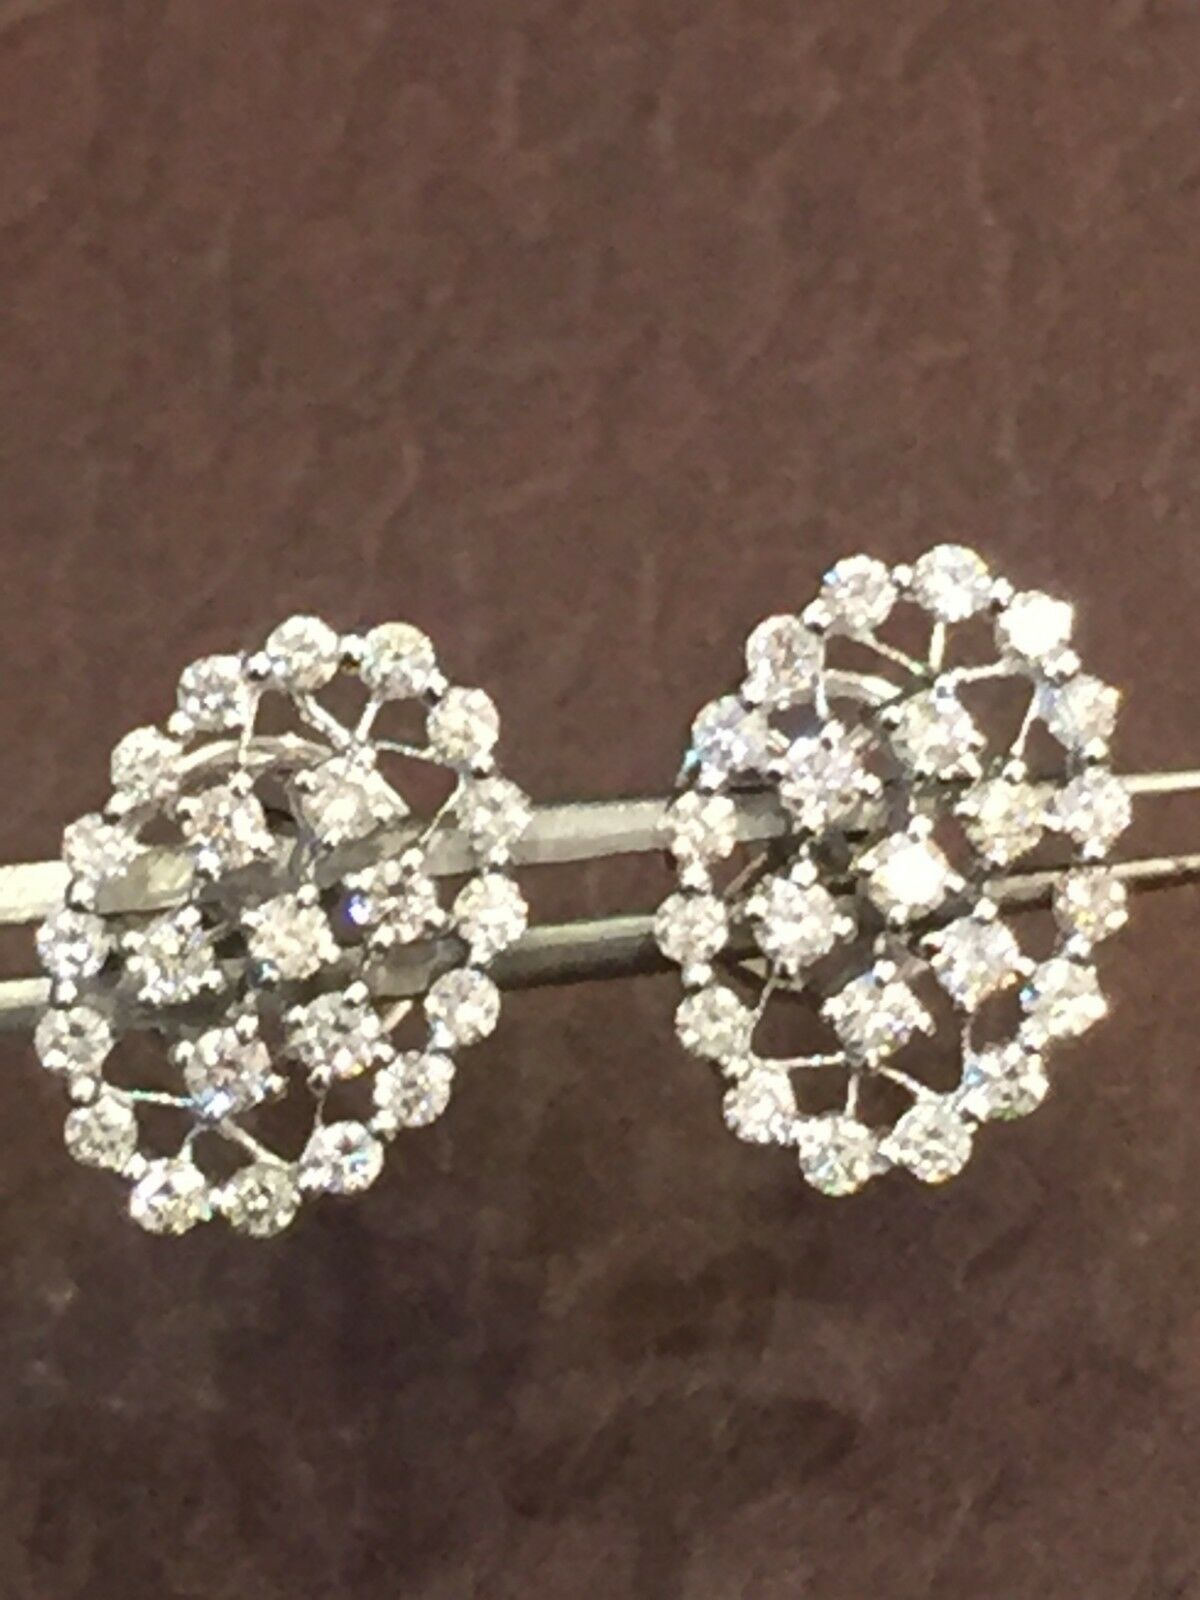 Classy 0.68 Cts Round Brilliant Cut Natural Diamonds Stud Earrings In 14K gold